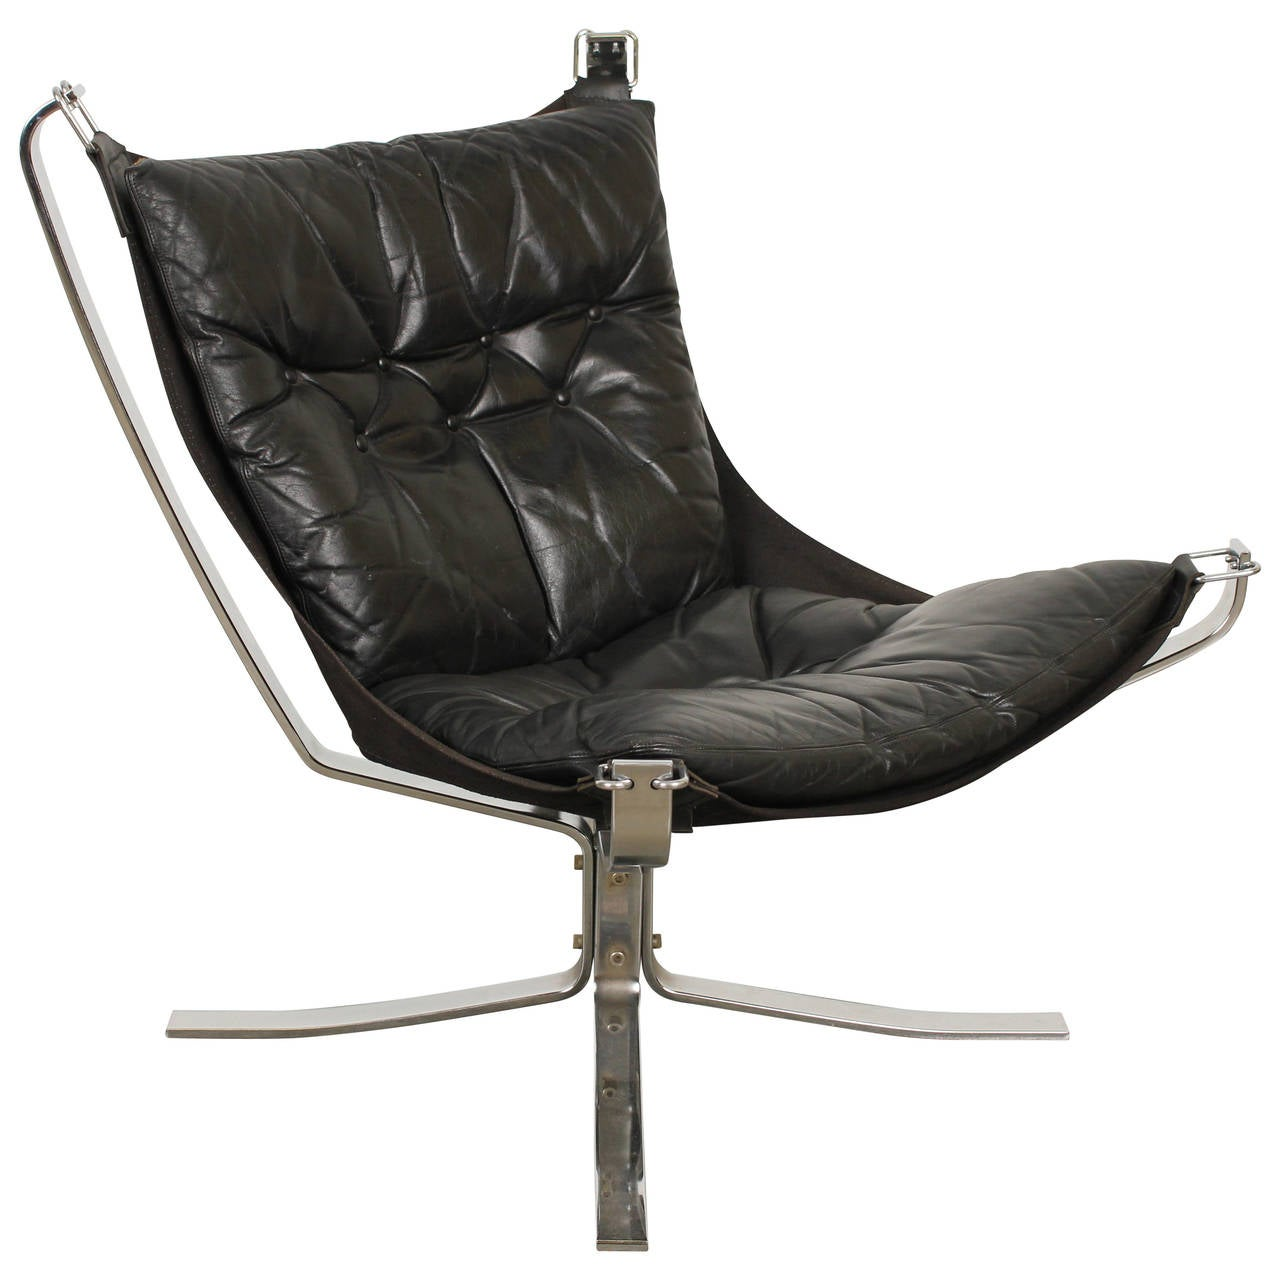 black leather falcon chair by sigurd ressell for sale at 1stdibs. Black Bedroom Furniture Sets. Home Design Ideas